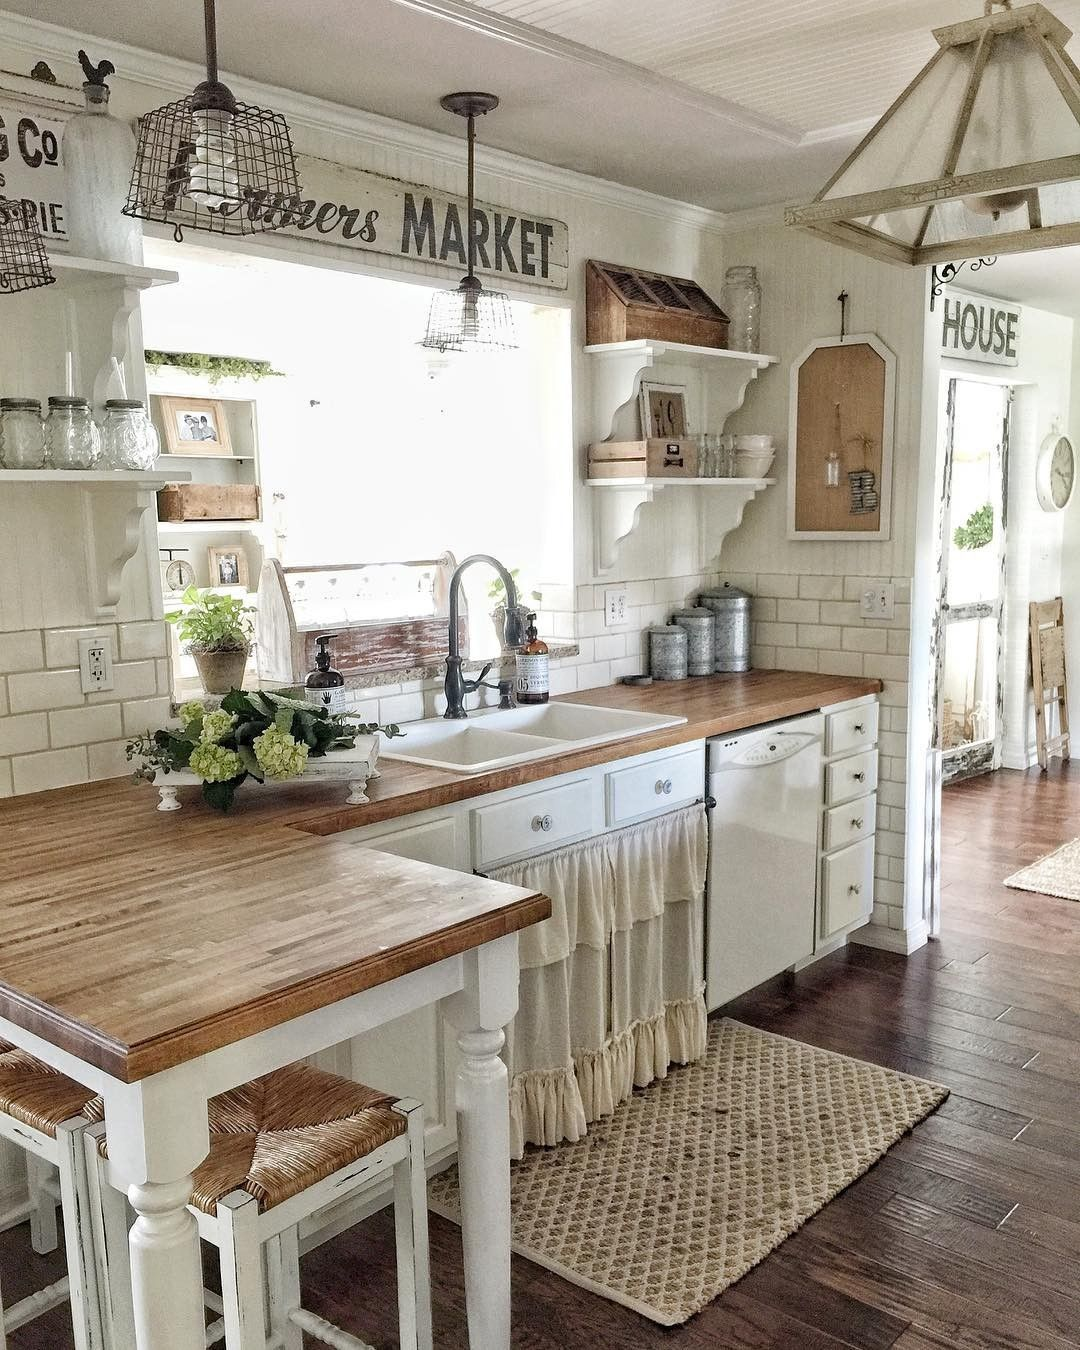 20 farmhouse kitchen ideas on a budget for 2018 kitchen ideas budget farmhouse kitchens and on kitchen ideas on a budget id=22168